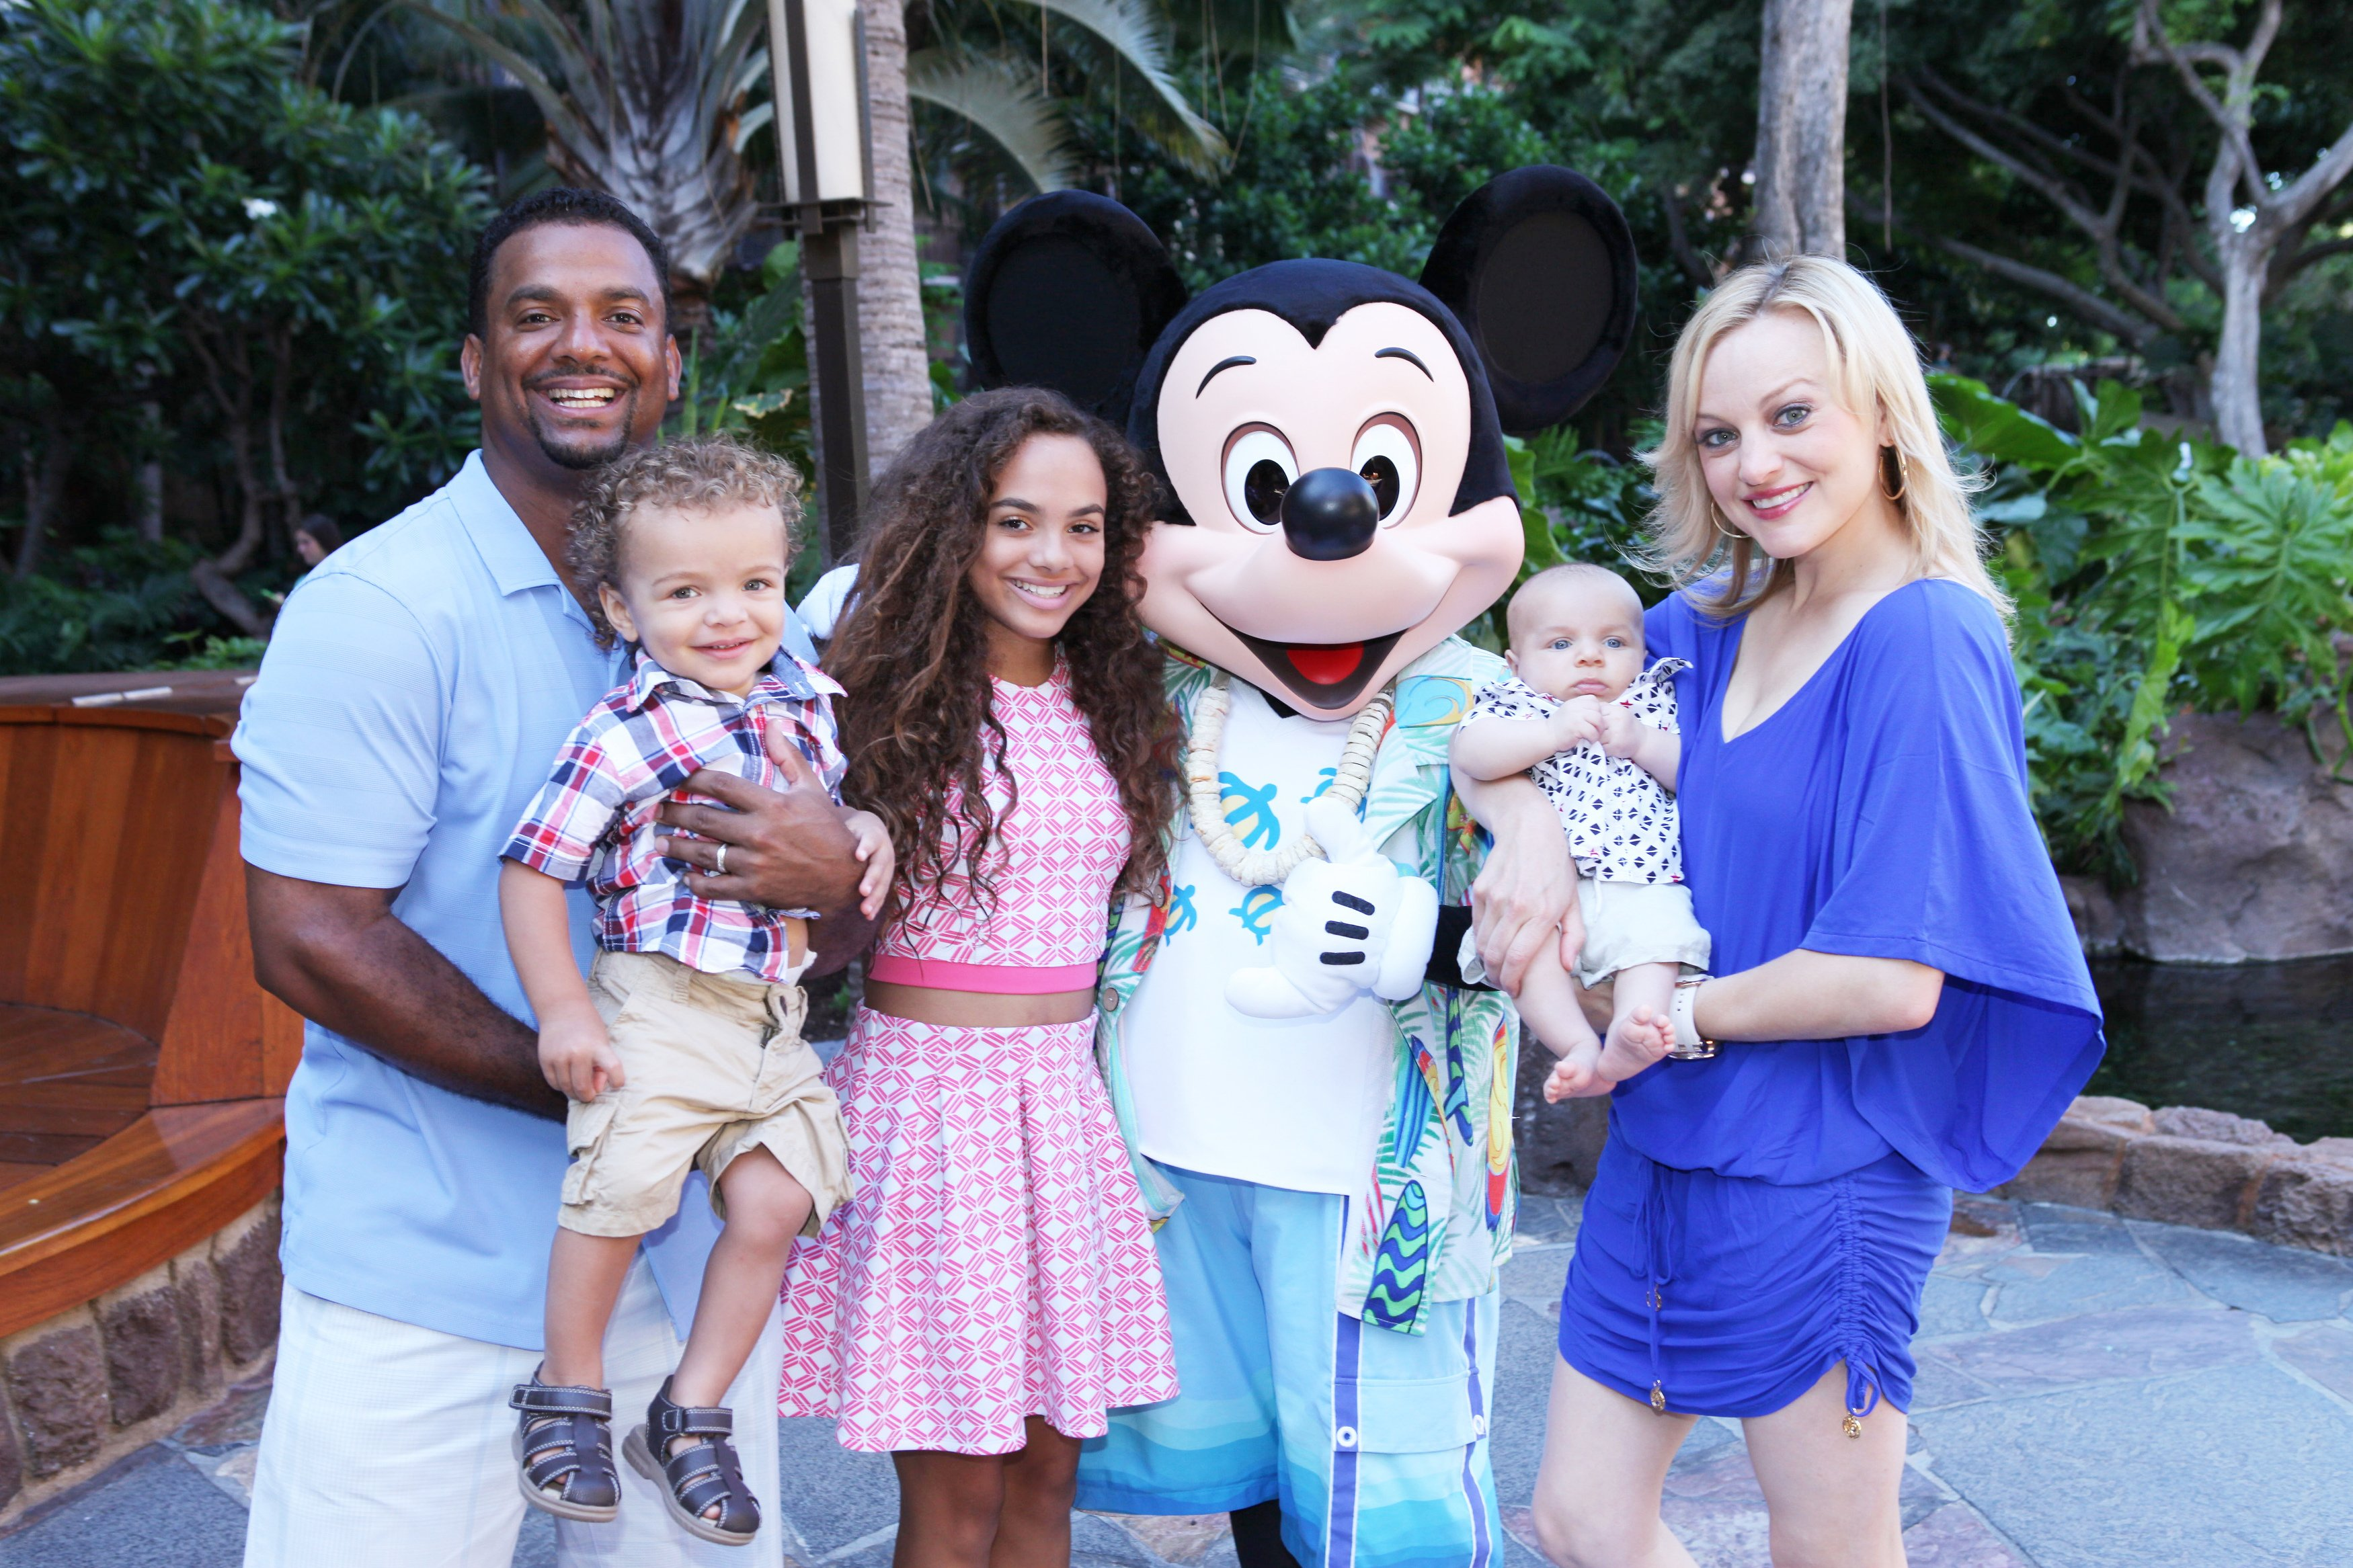 Alfonso Ribeiro, his wife Angela, and their 3 kids, pose at a Hawaiian Disney Resort & Spa on July 26, 2015.   Source: Getty Images